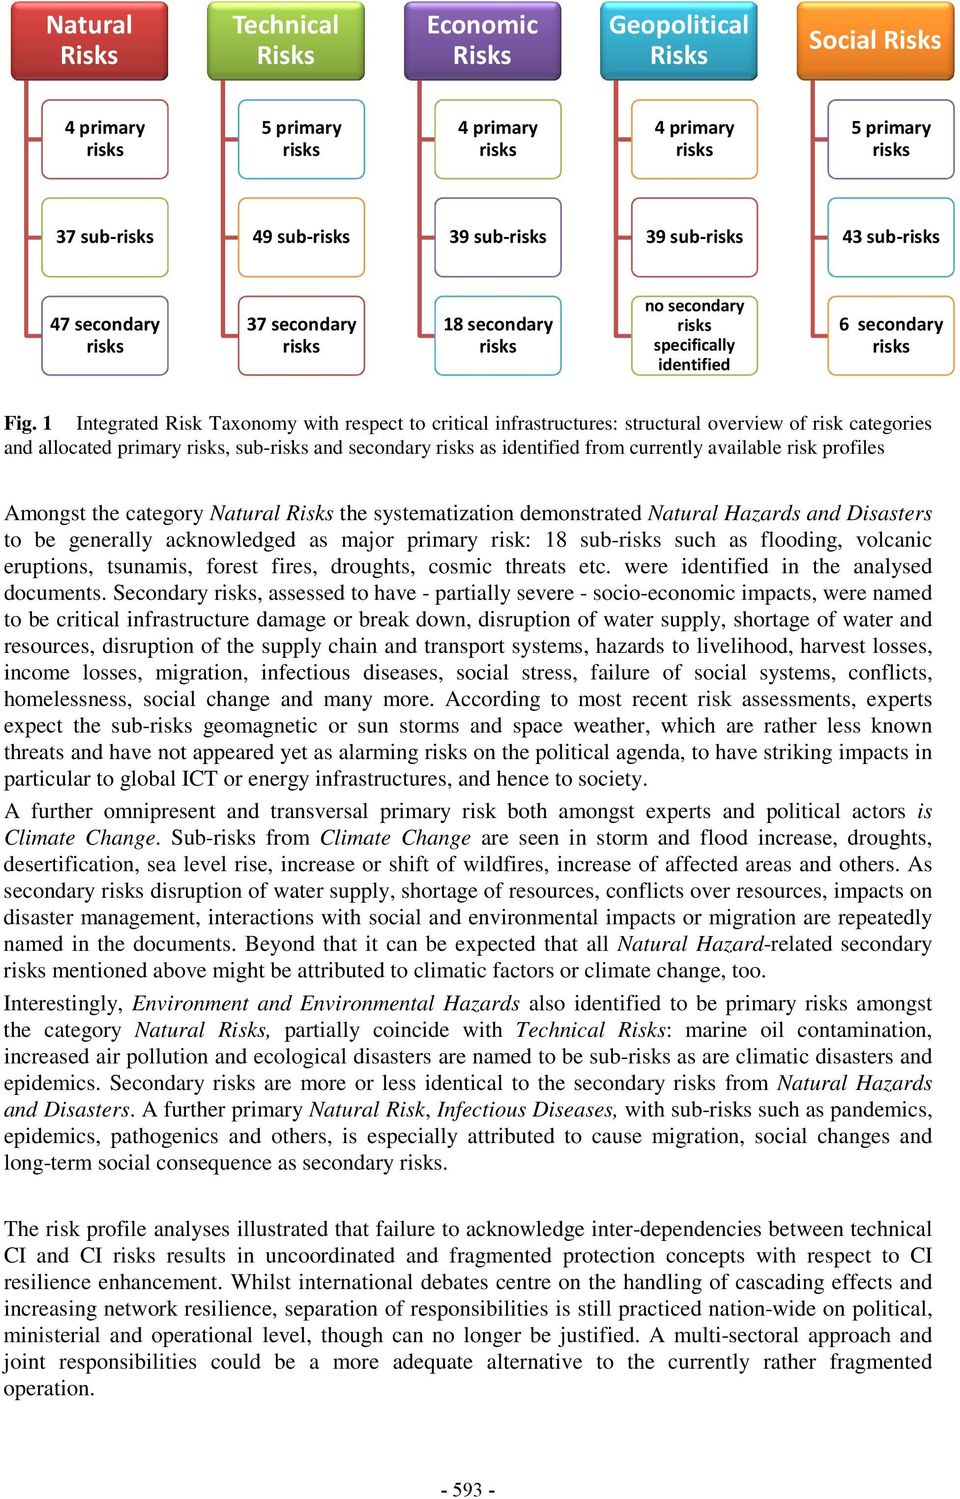 1 Integrated Risk Taxonomy with respect to critical infrastructures: structural overview of risk categories and allocated primary, sub- and secondary as identified from currently available risk